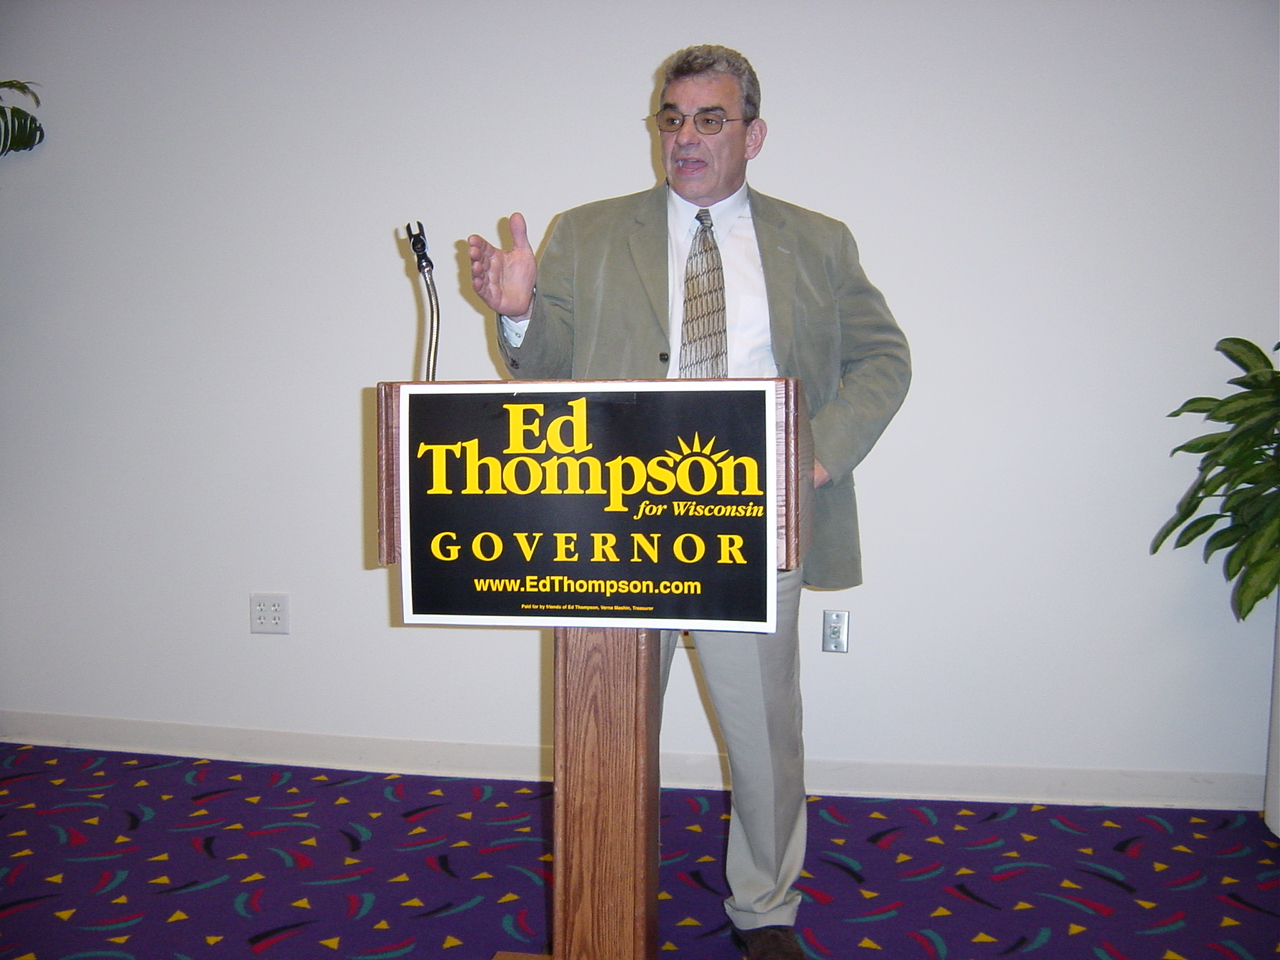 Ed Thompson campaigning for Wisconsin Governor.